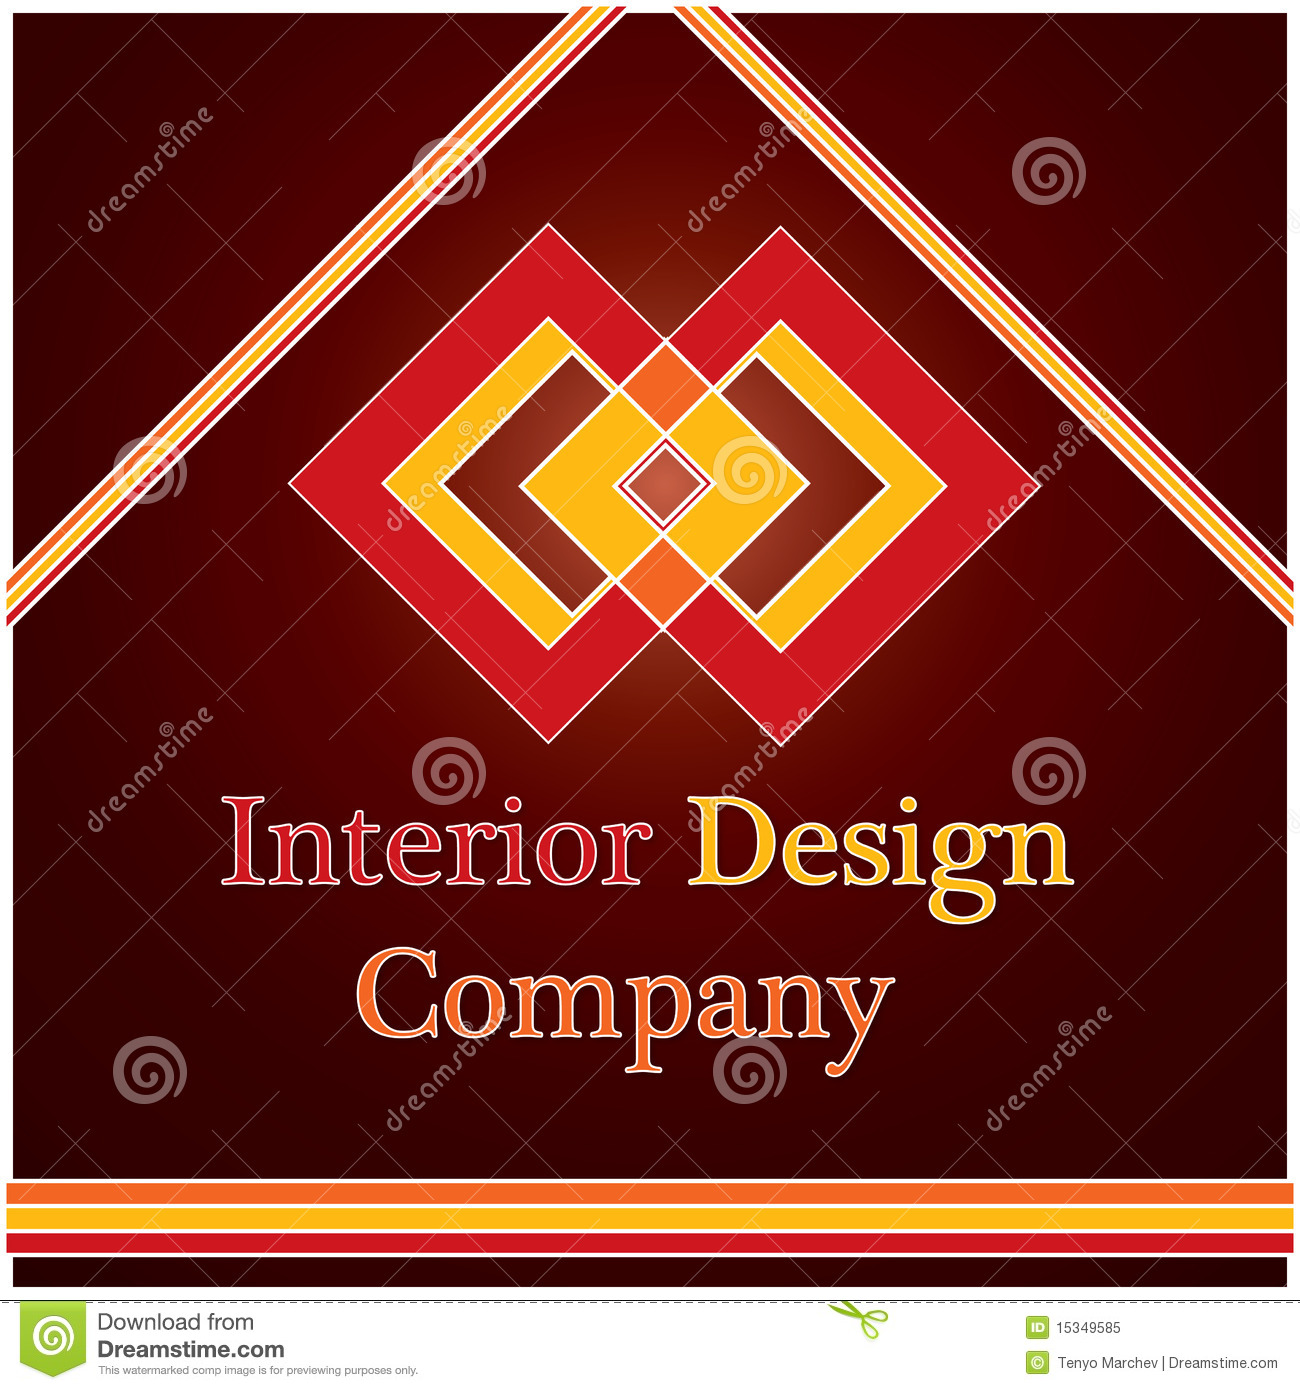 Interior Design Company Logo Royalty Free Stock Photo - Image